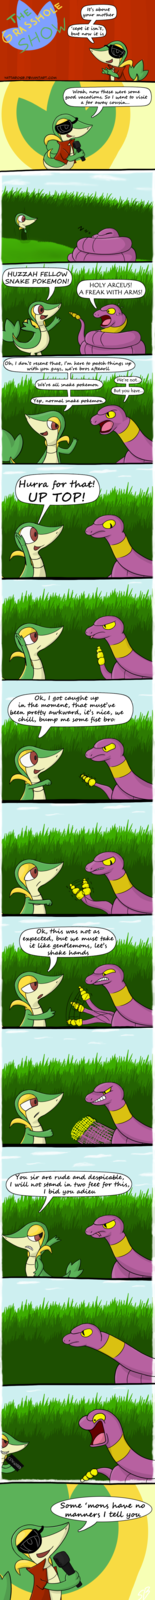 the_grasshole_show_4_by_yattarosb-d2y2eg3.png